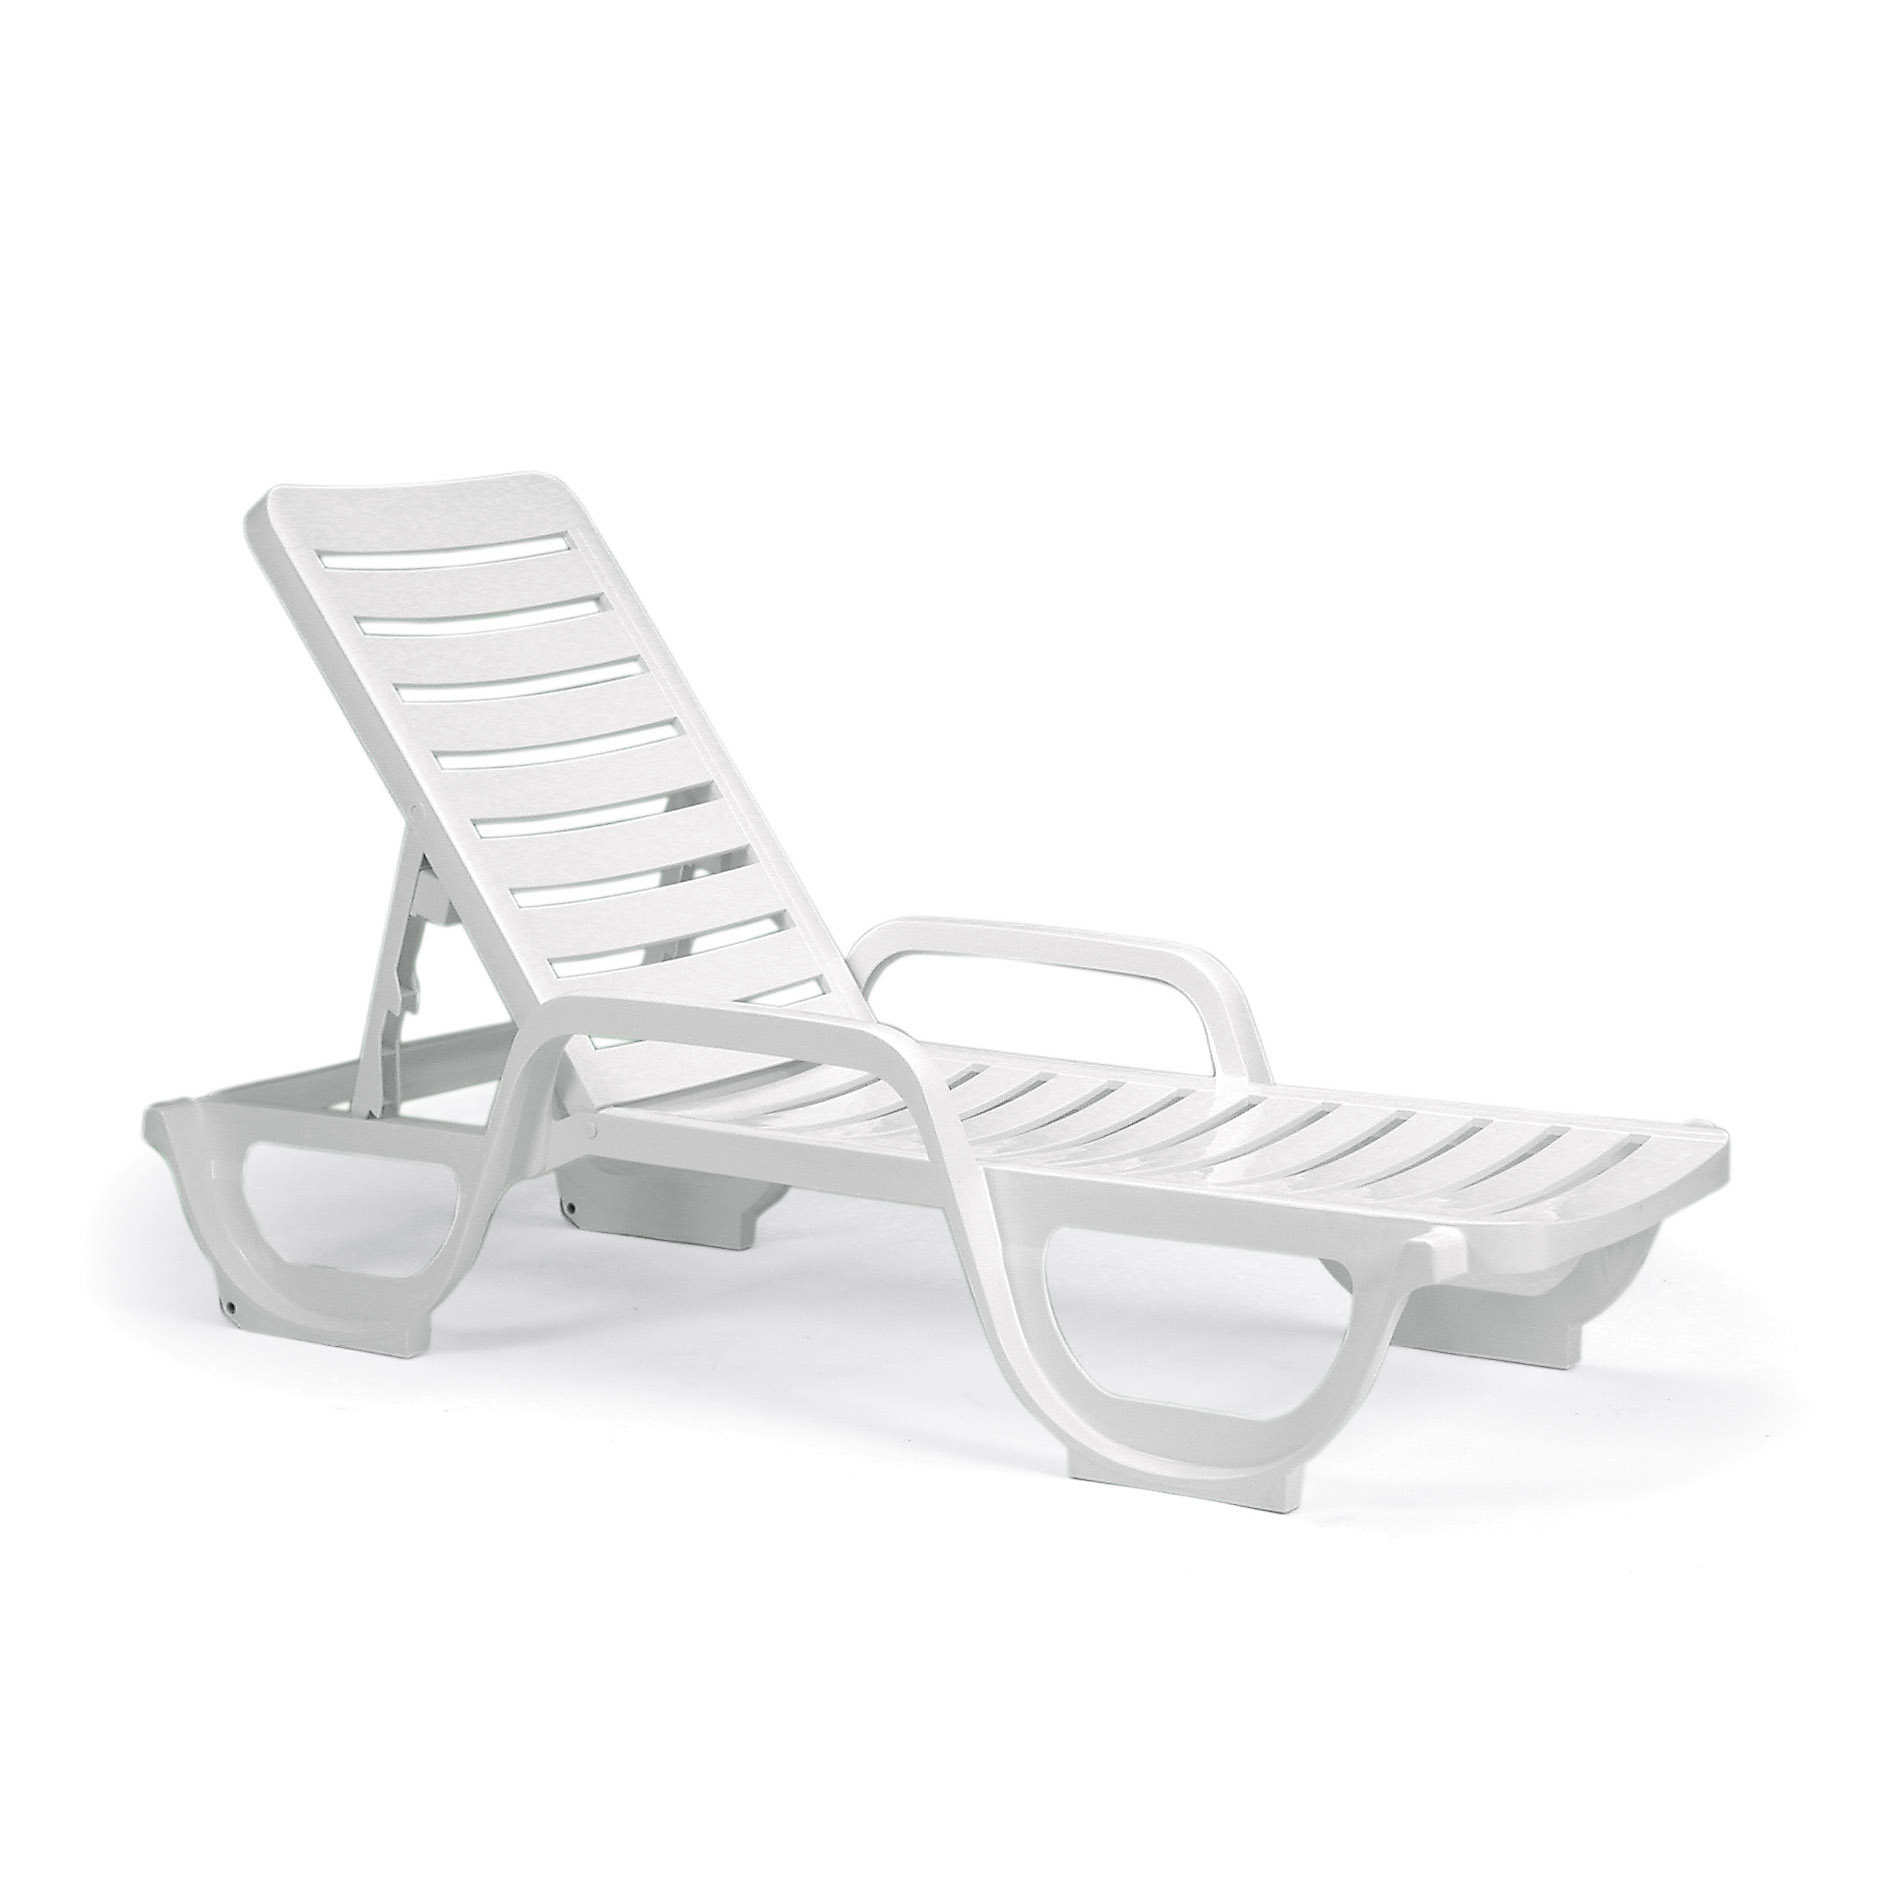 Grosfillex 44031004 chaise, outdoor